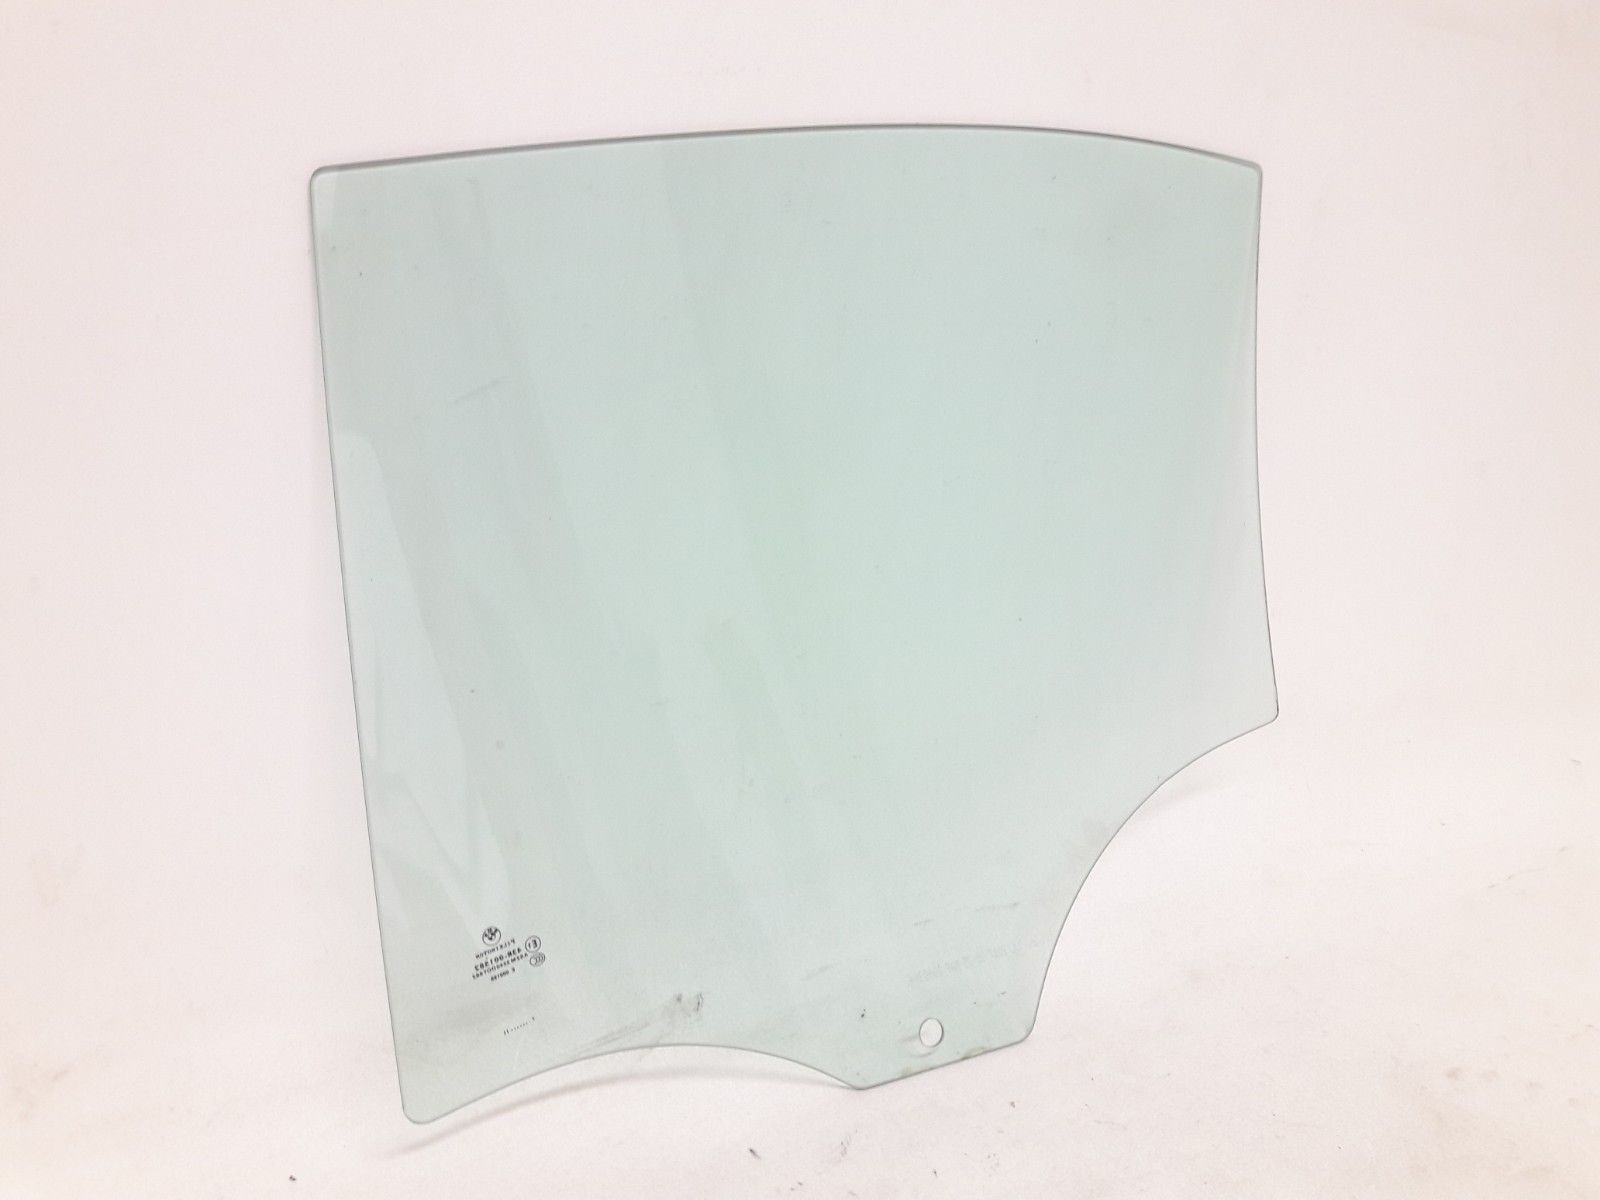 2006 - 2012 BMW 3 Series Right Rear Door Window Glass OEM 51-34-7-119-978 Does not apply